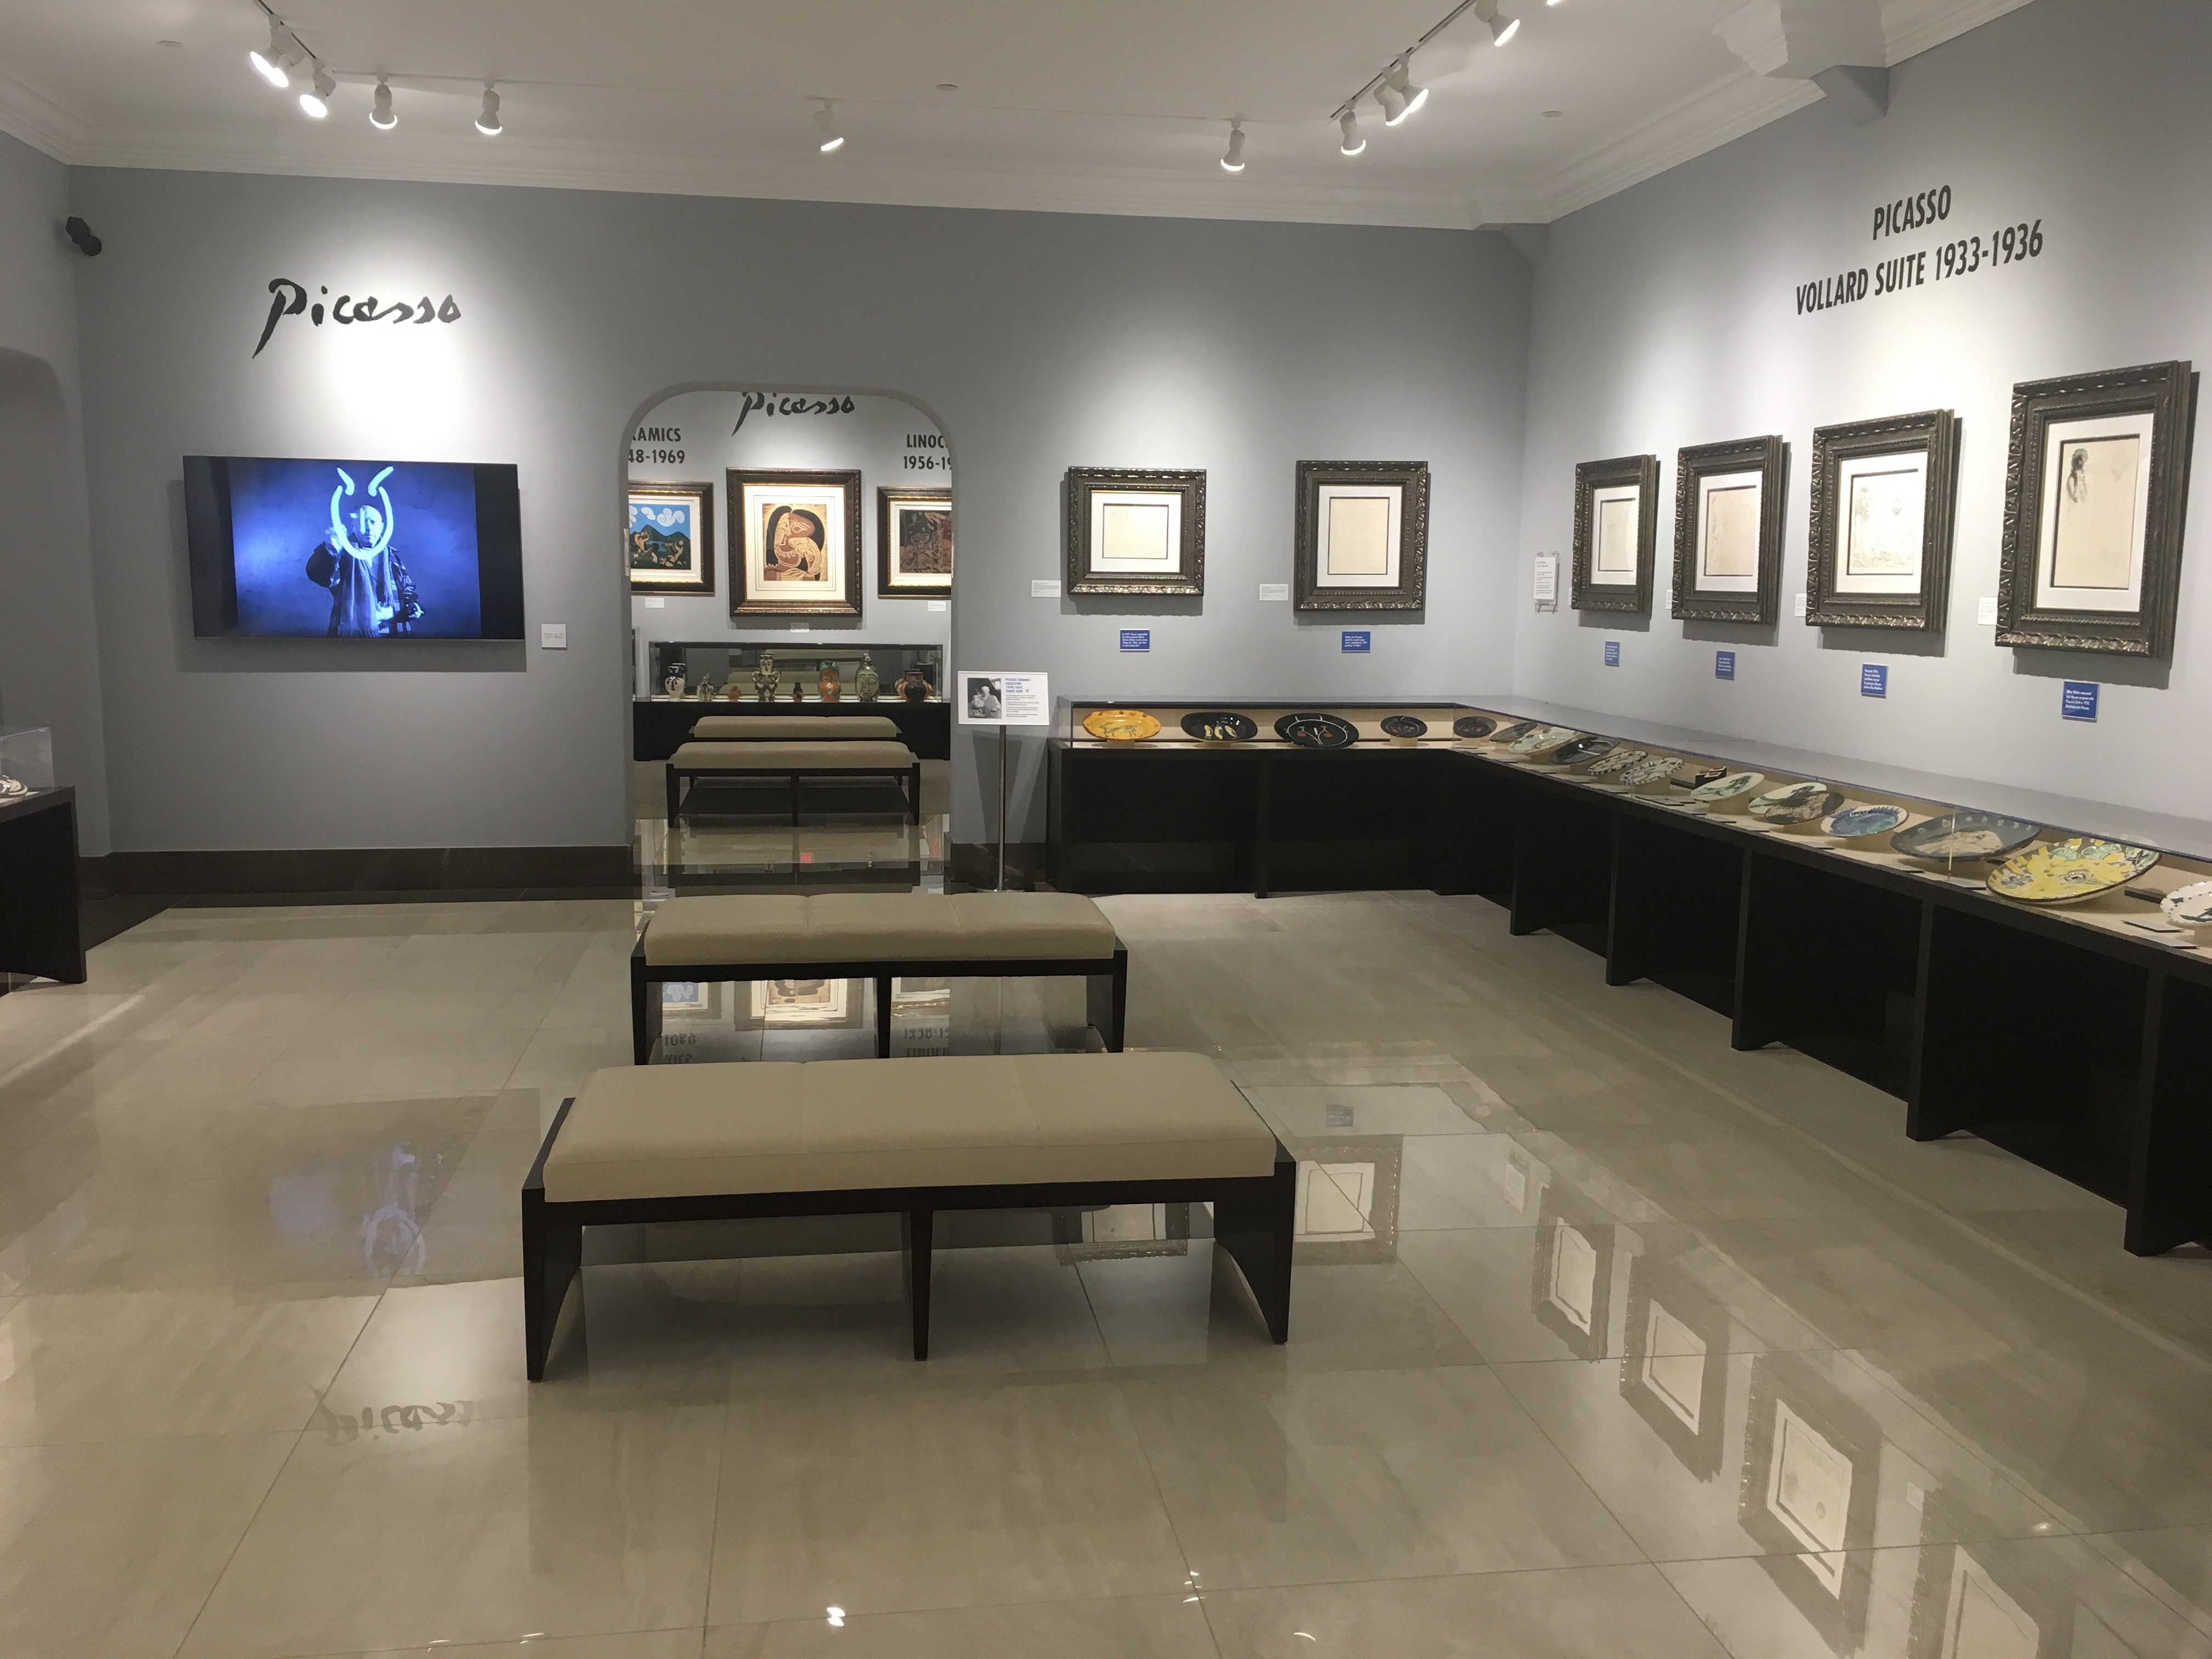 The Vollard Suite gallery at Park West Museum.